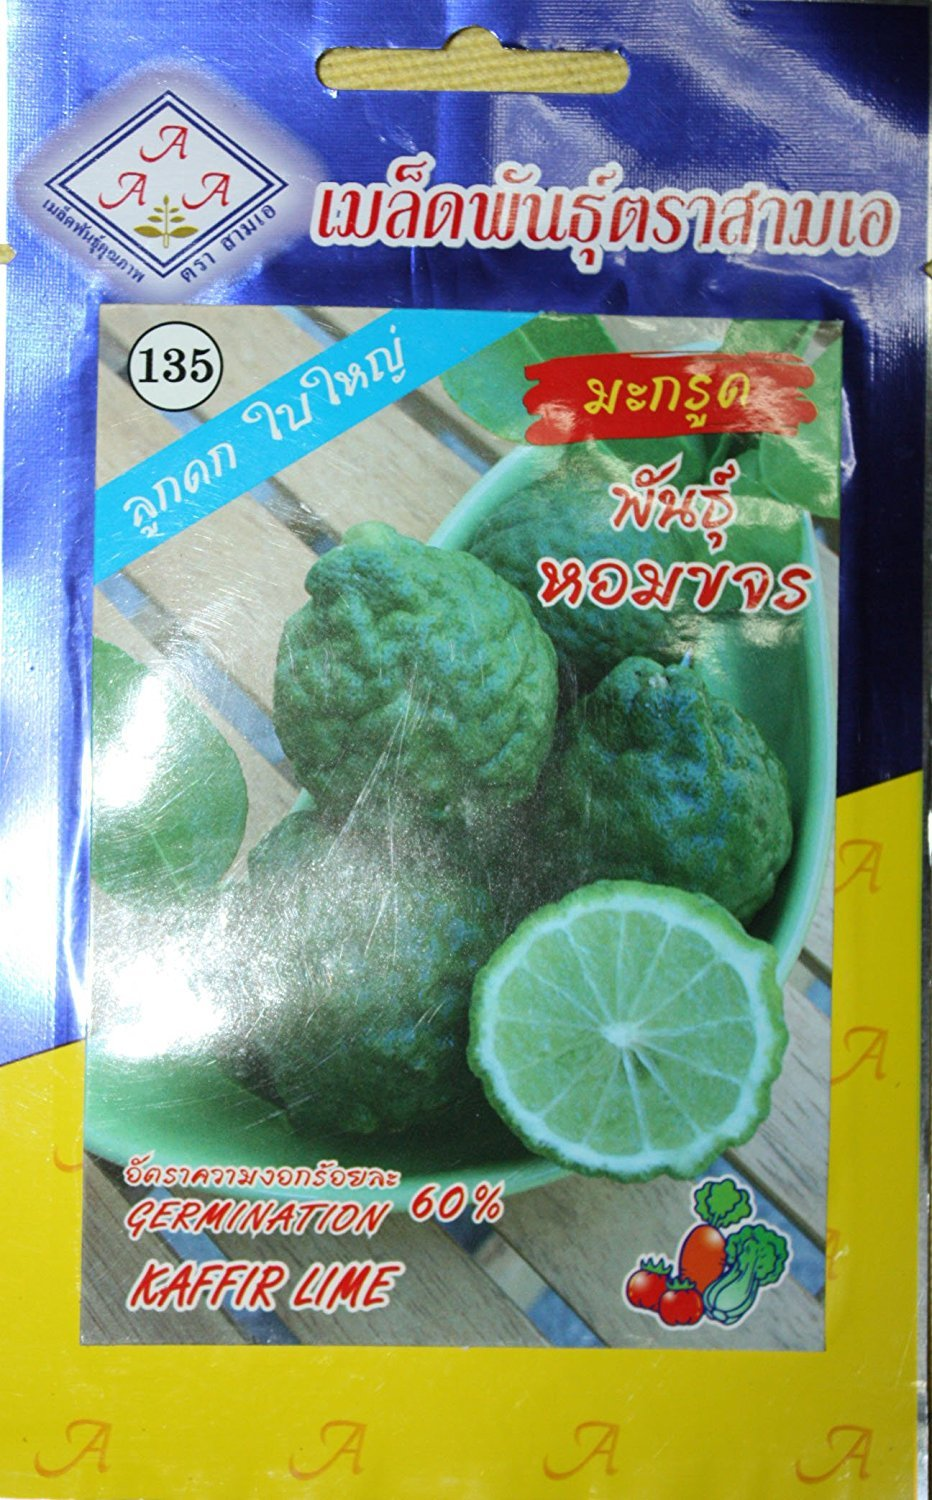 15Seeds Thai Kaffir Lime, Citrus Hystrix ,Bai Magrood, Leech Lime Seeds By 3A SMR TRTD9124